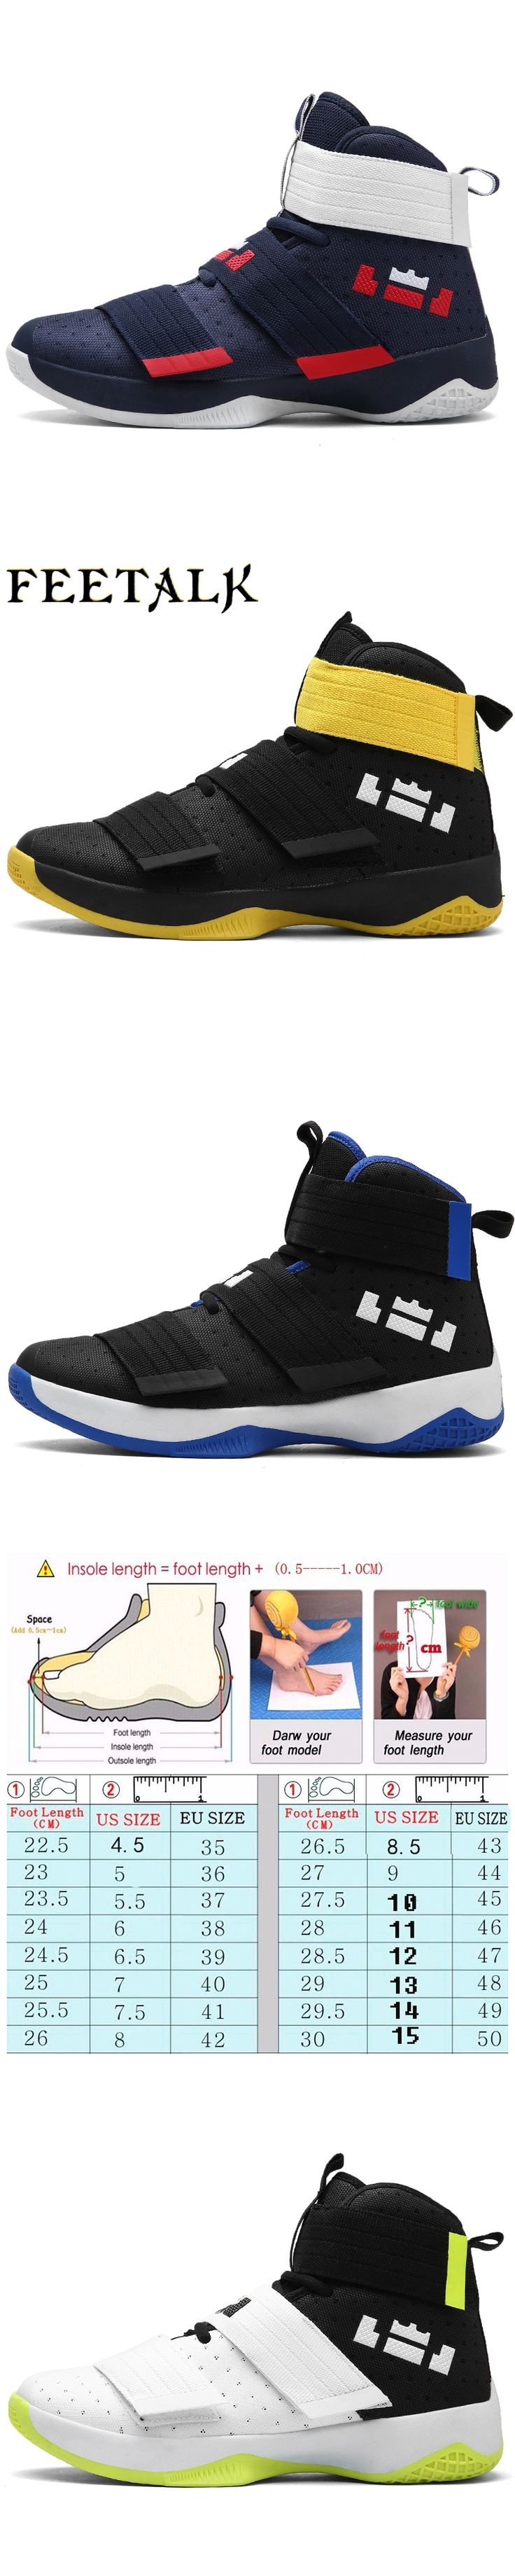 2017 Men's Women's Basketball Shoes Sneaker PU Breathable outdoor Athletic  Sport boots Sneakers For Male Basketball